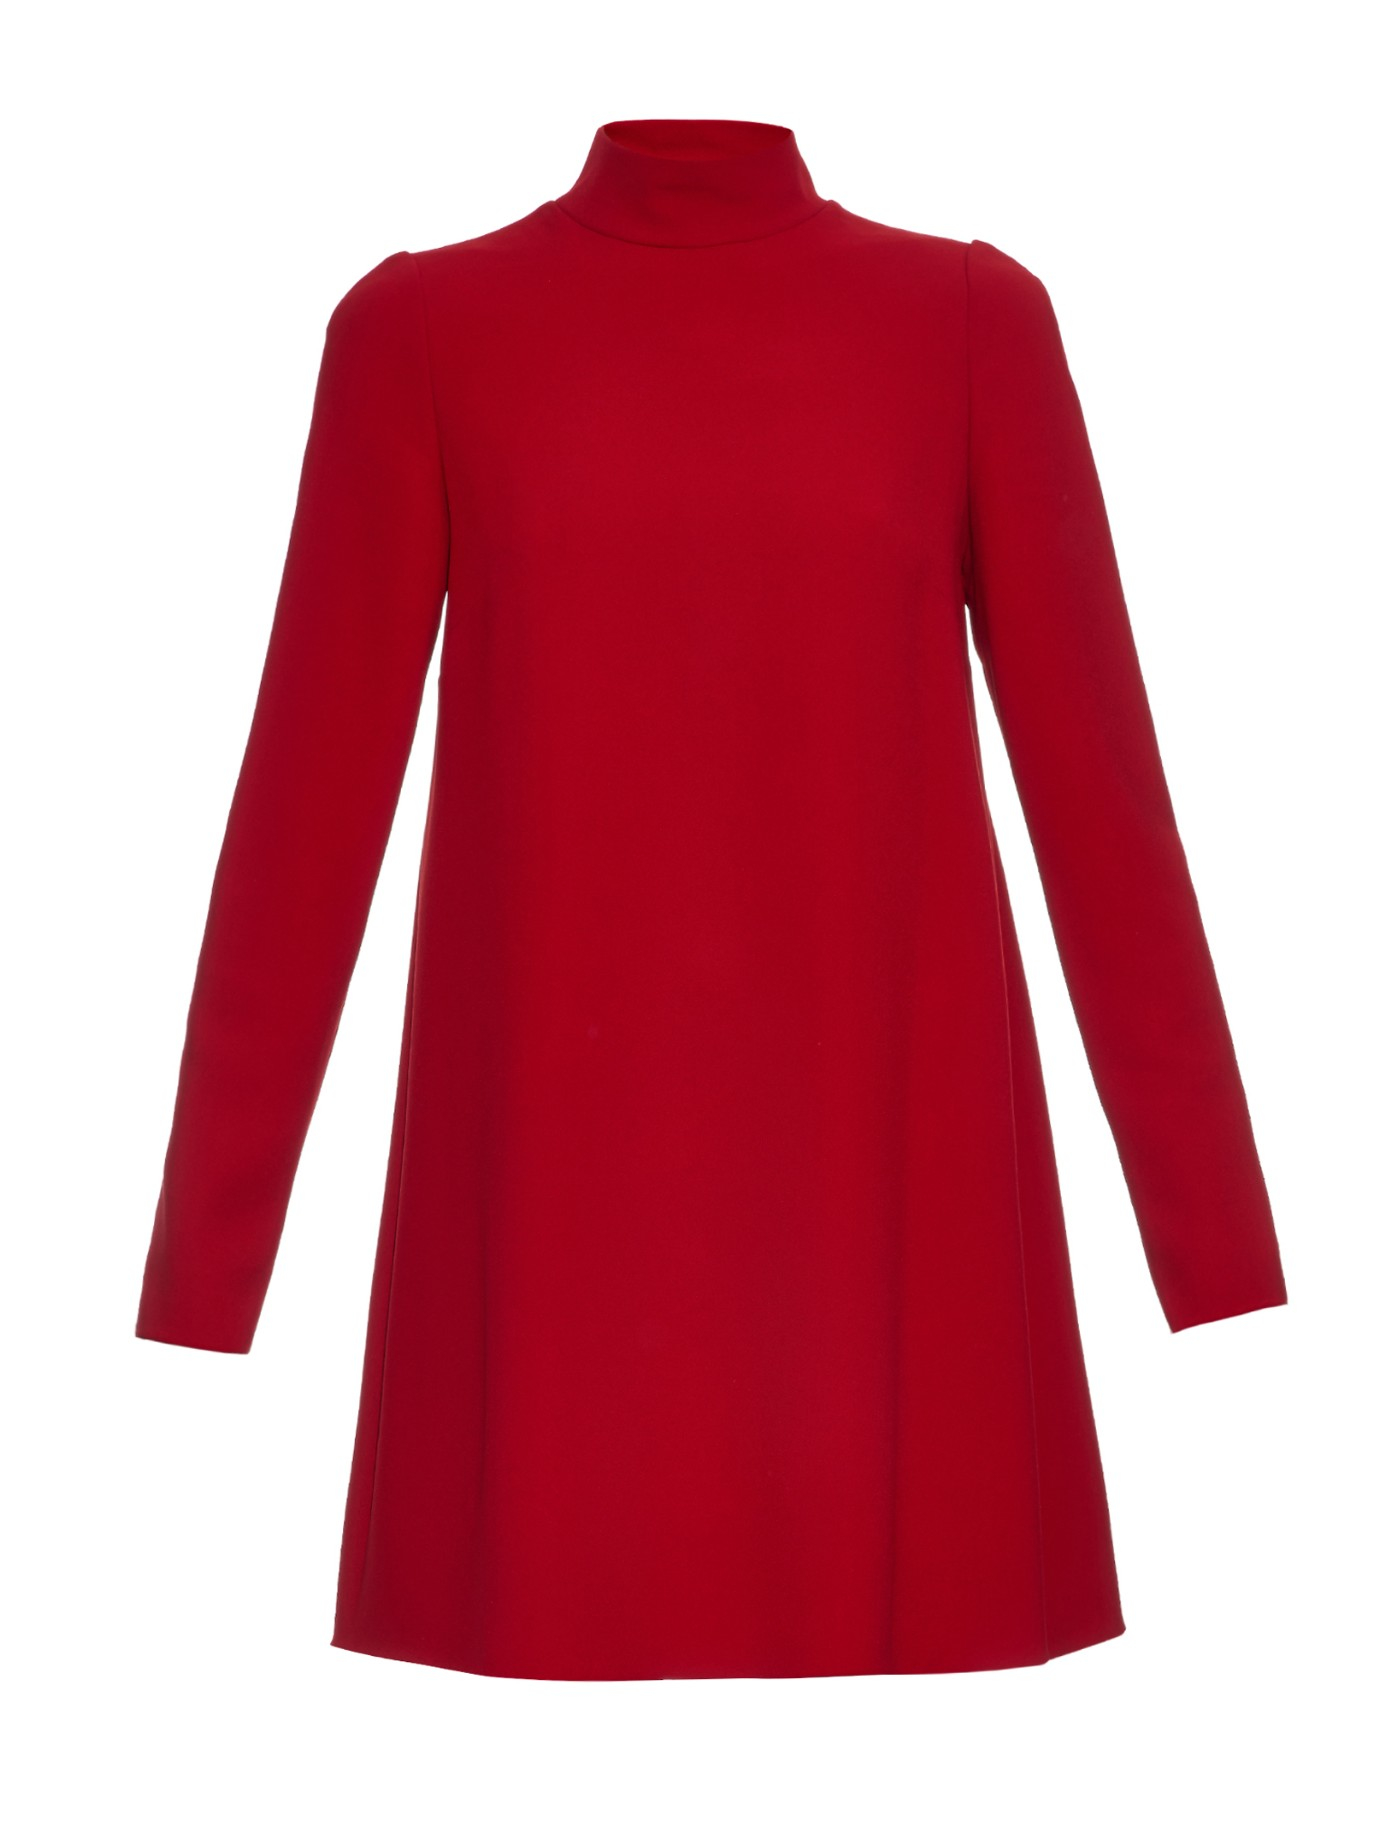 Dolce & gabbana High-Neck Tunic Dress in Red   Lyst